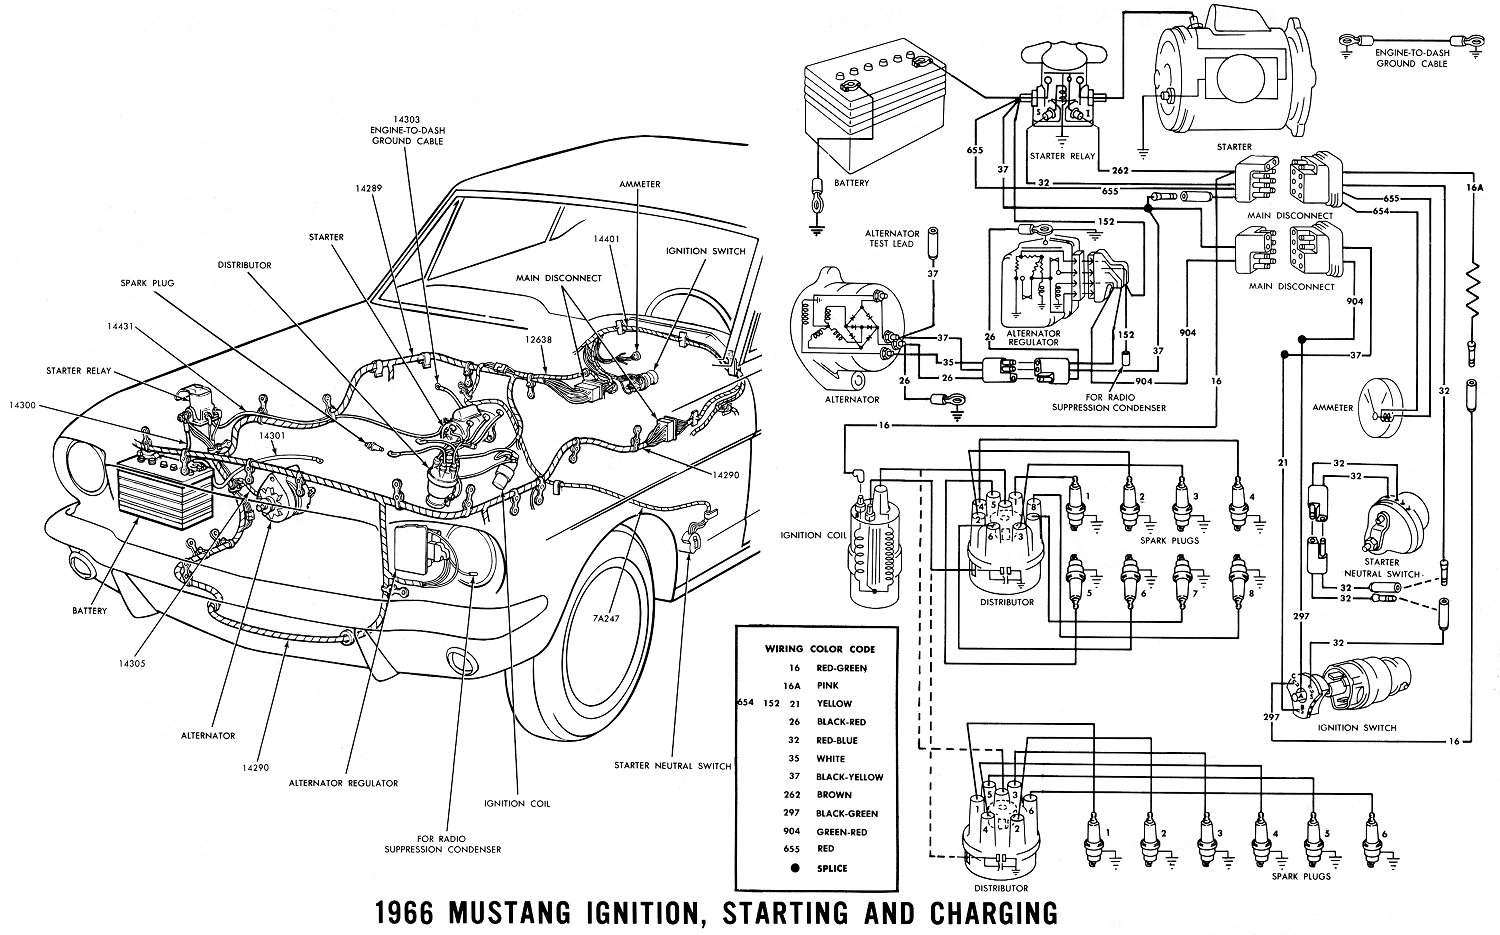 1966 mustang wiring harness diagram wiring data schema u2022 rh exoticterra co